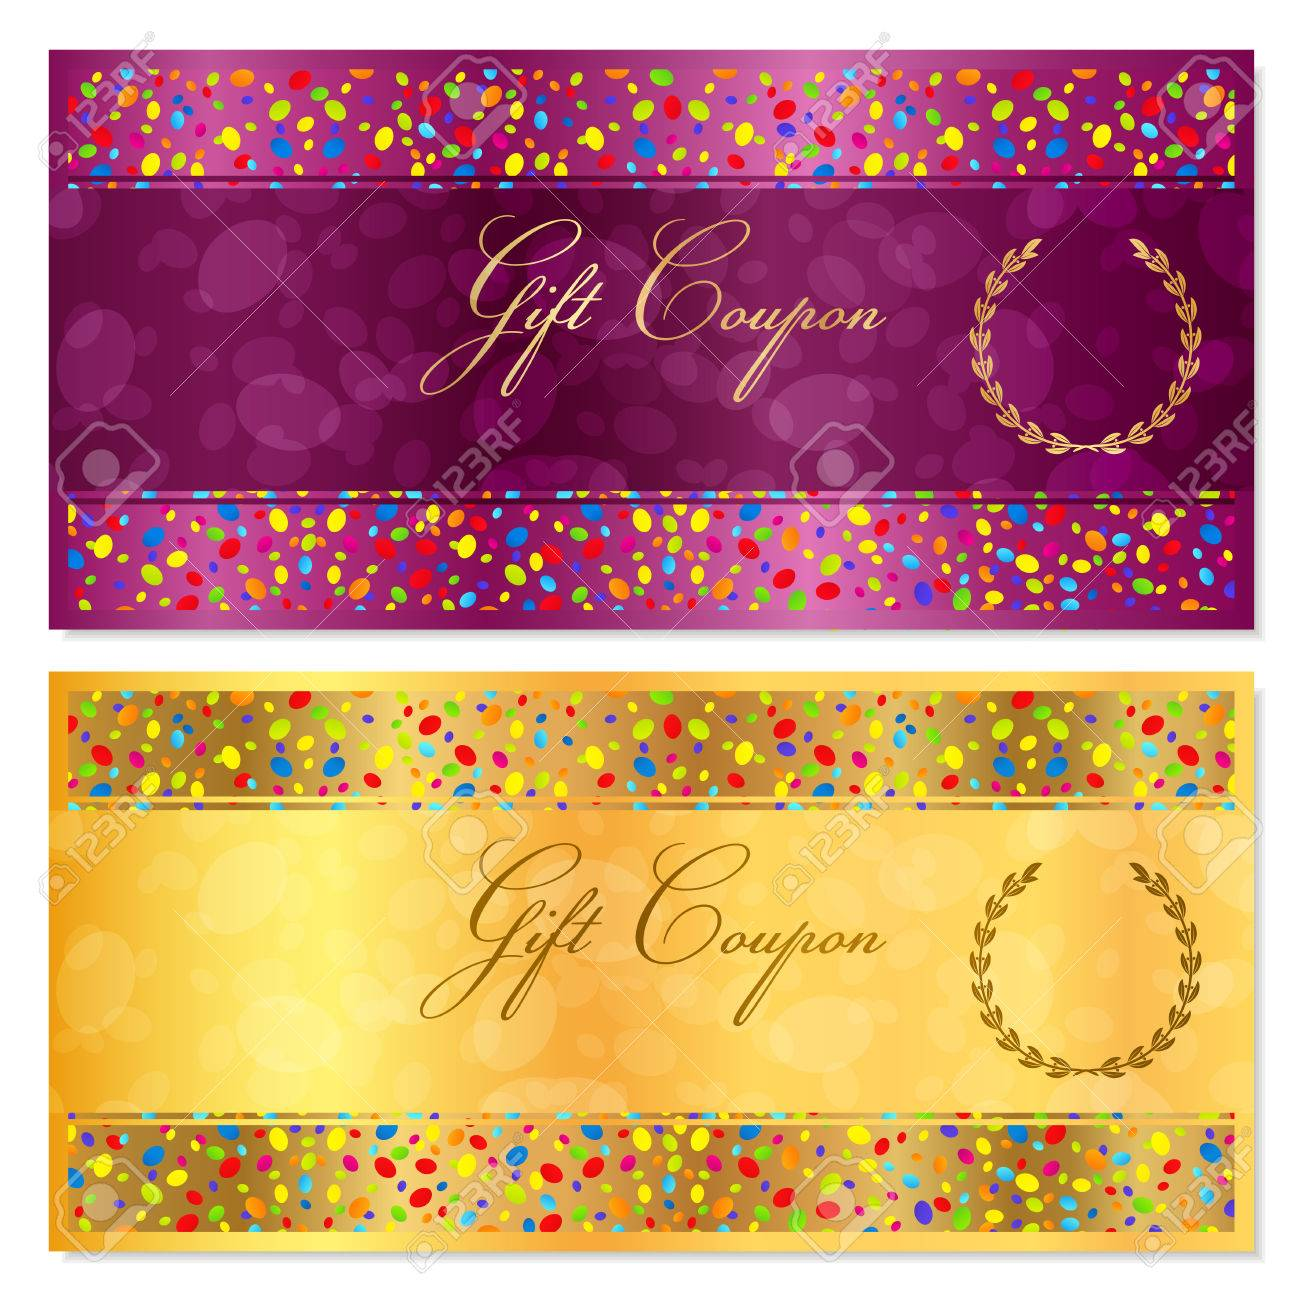 Gift certificate coupon voucher reward or gift card template gift certificate coupon voucher reward or gift card template with bright confetti colorful yelopaper Image collections